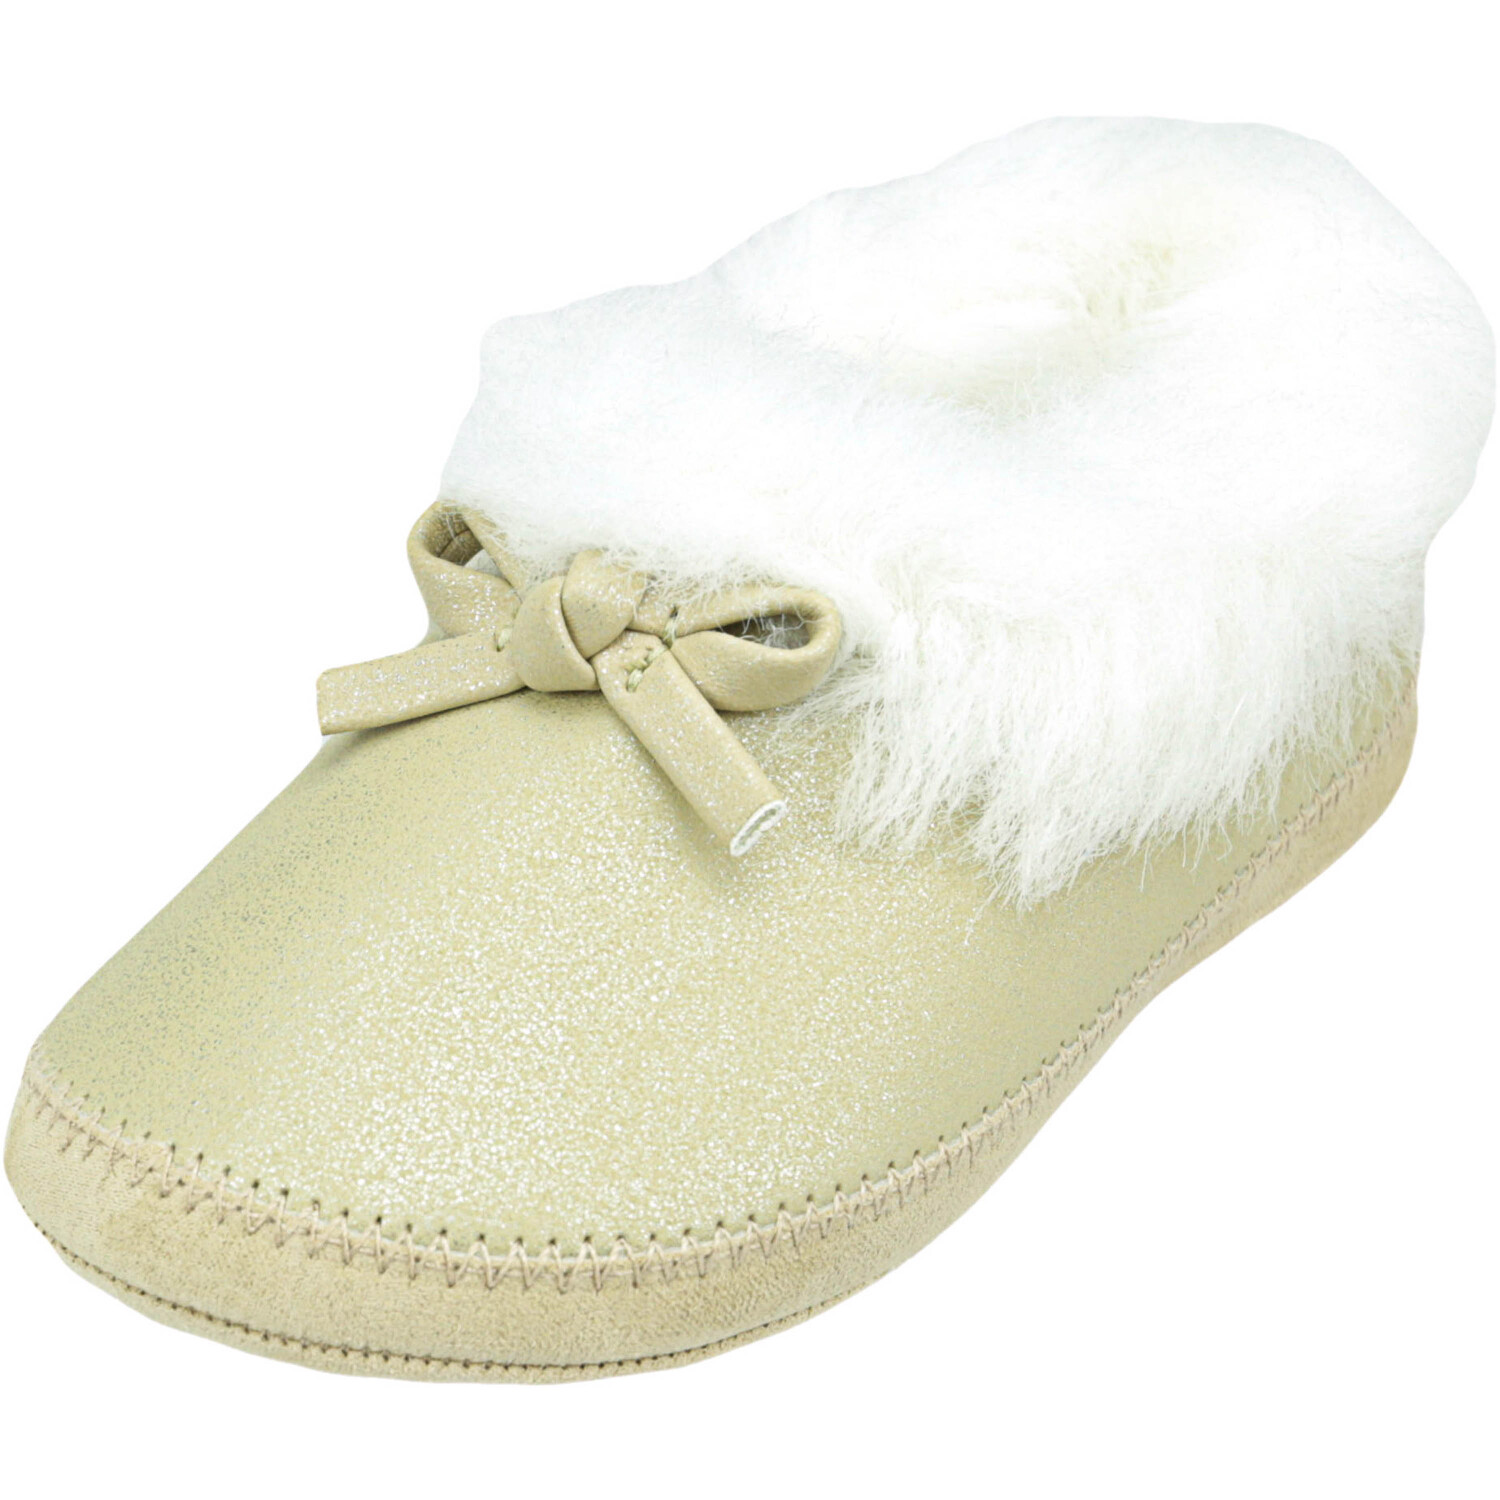 Janie And Jack Girl's Shimmer Slipper Light Toffee Ankle-High - 7M